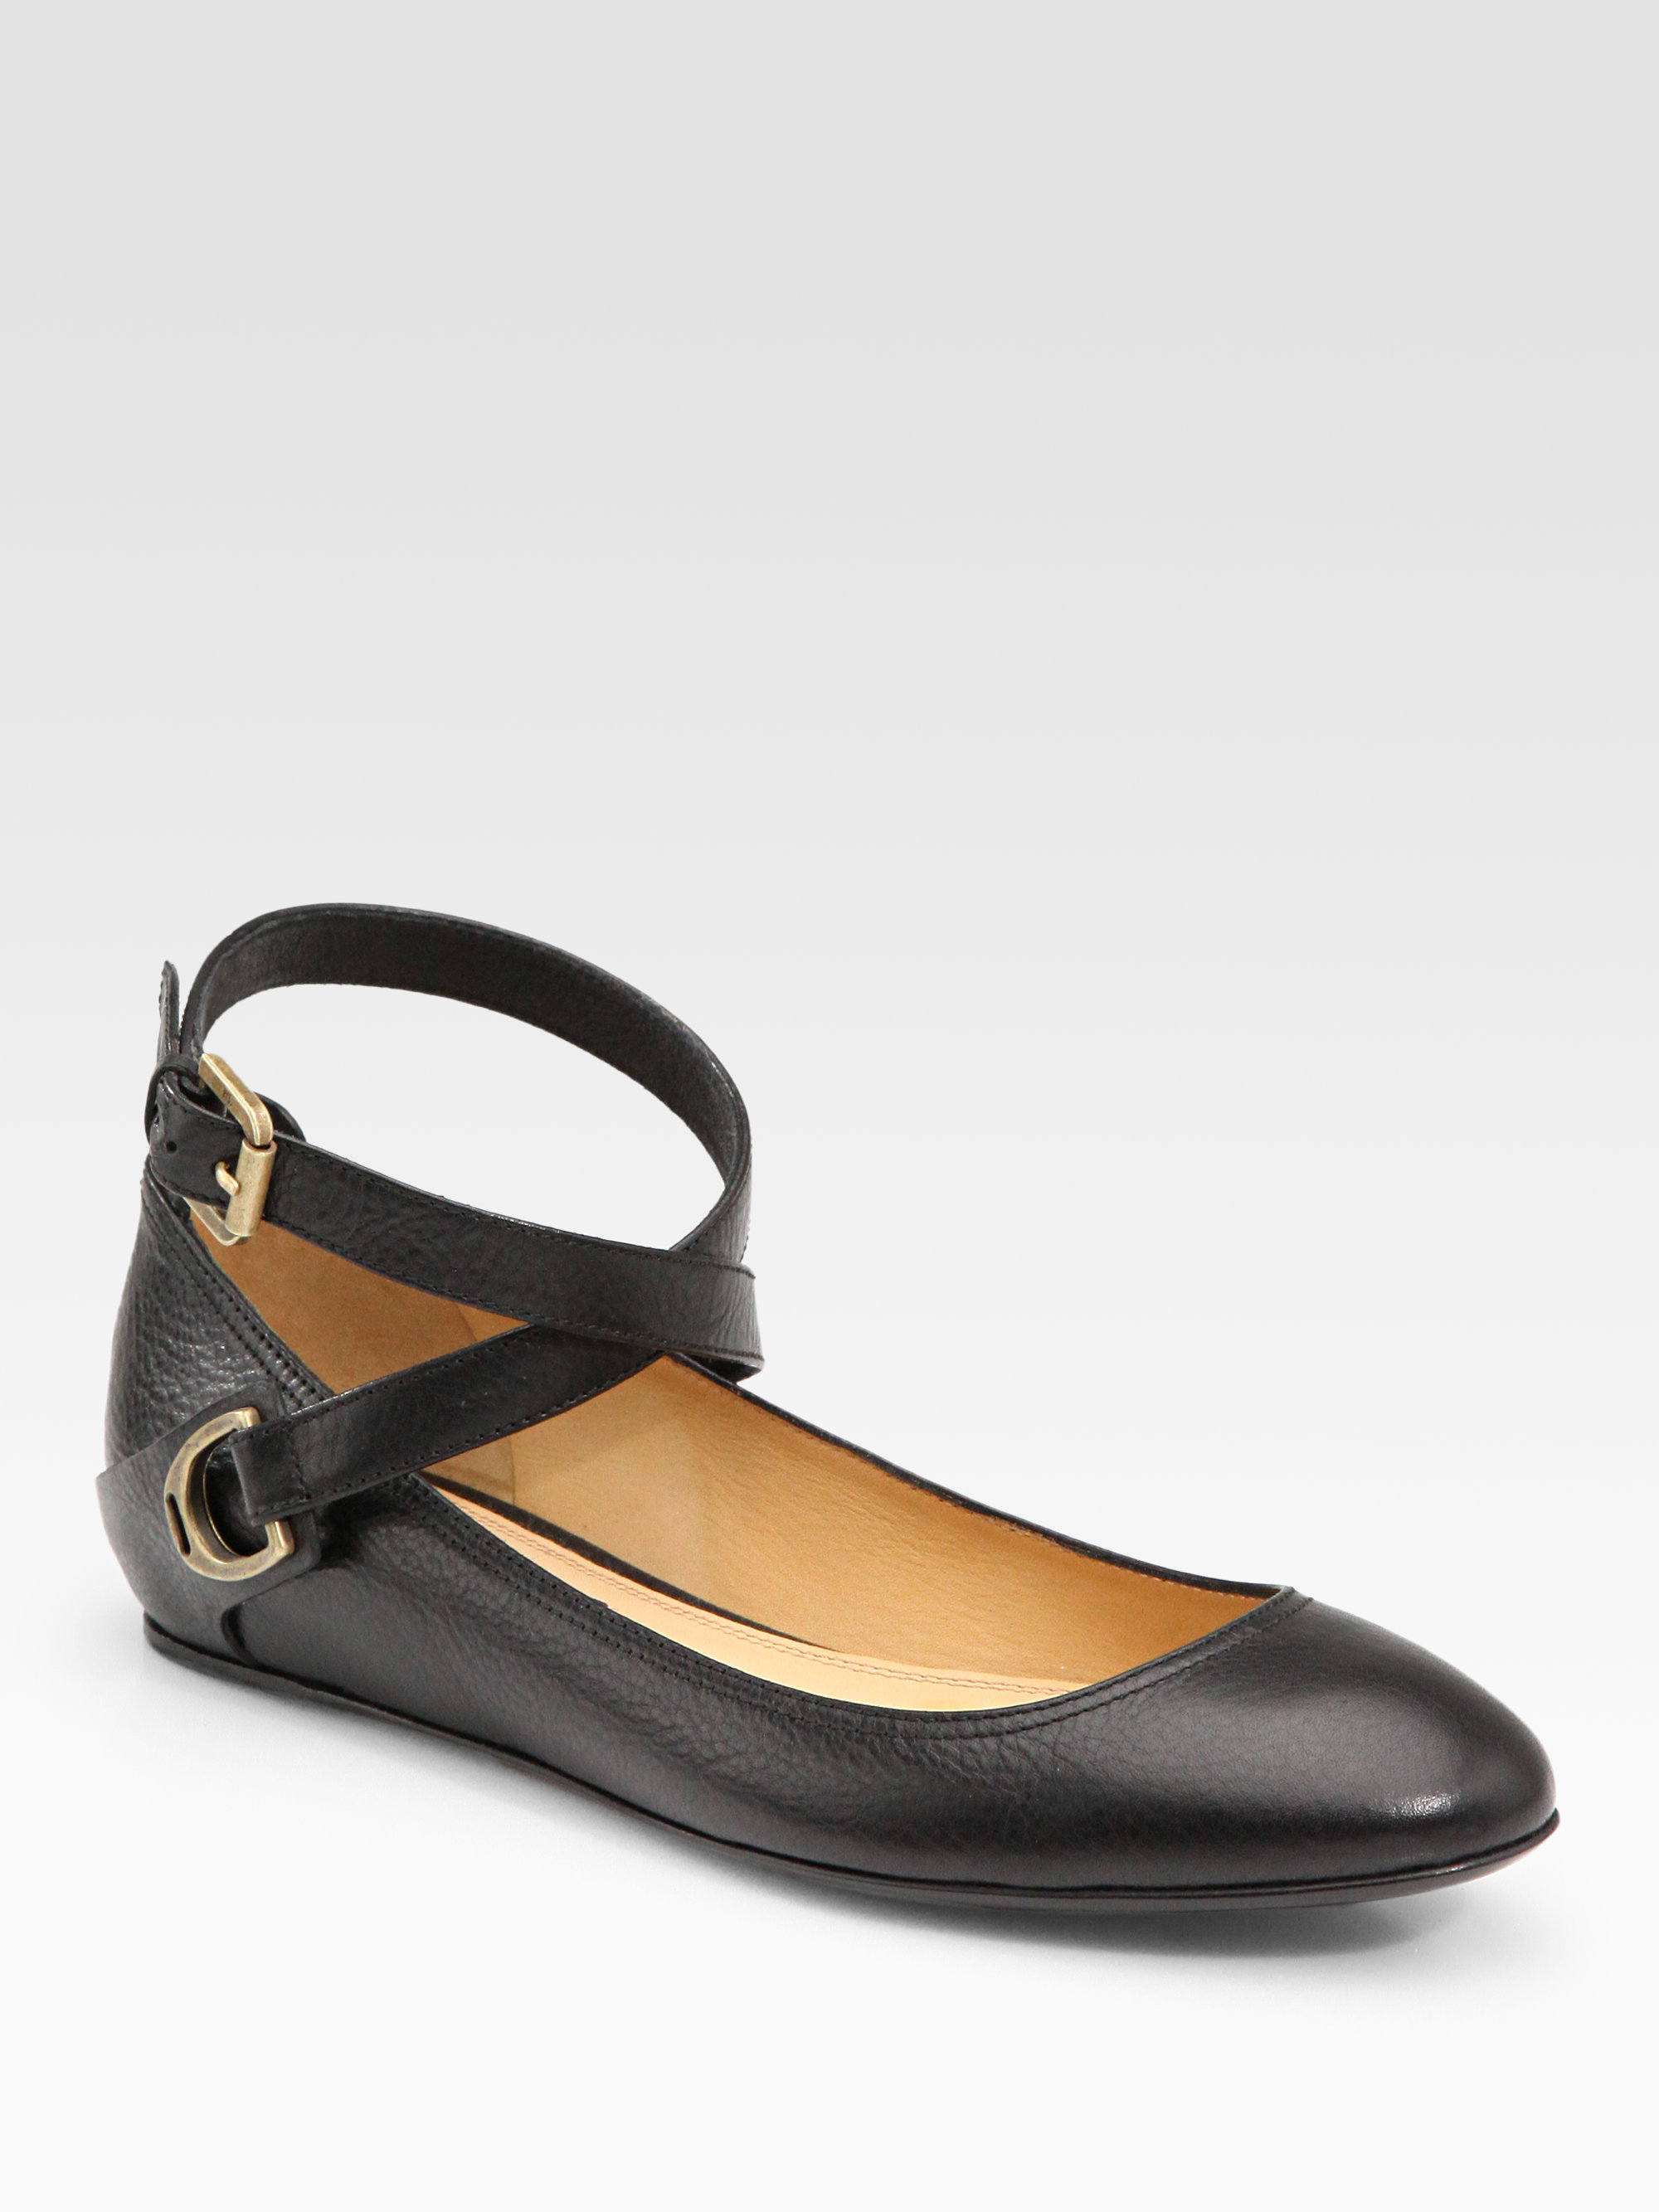 Ralph Lauren Made In Italy Womens Shoes